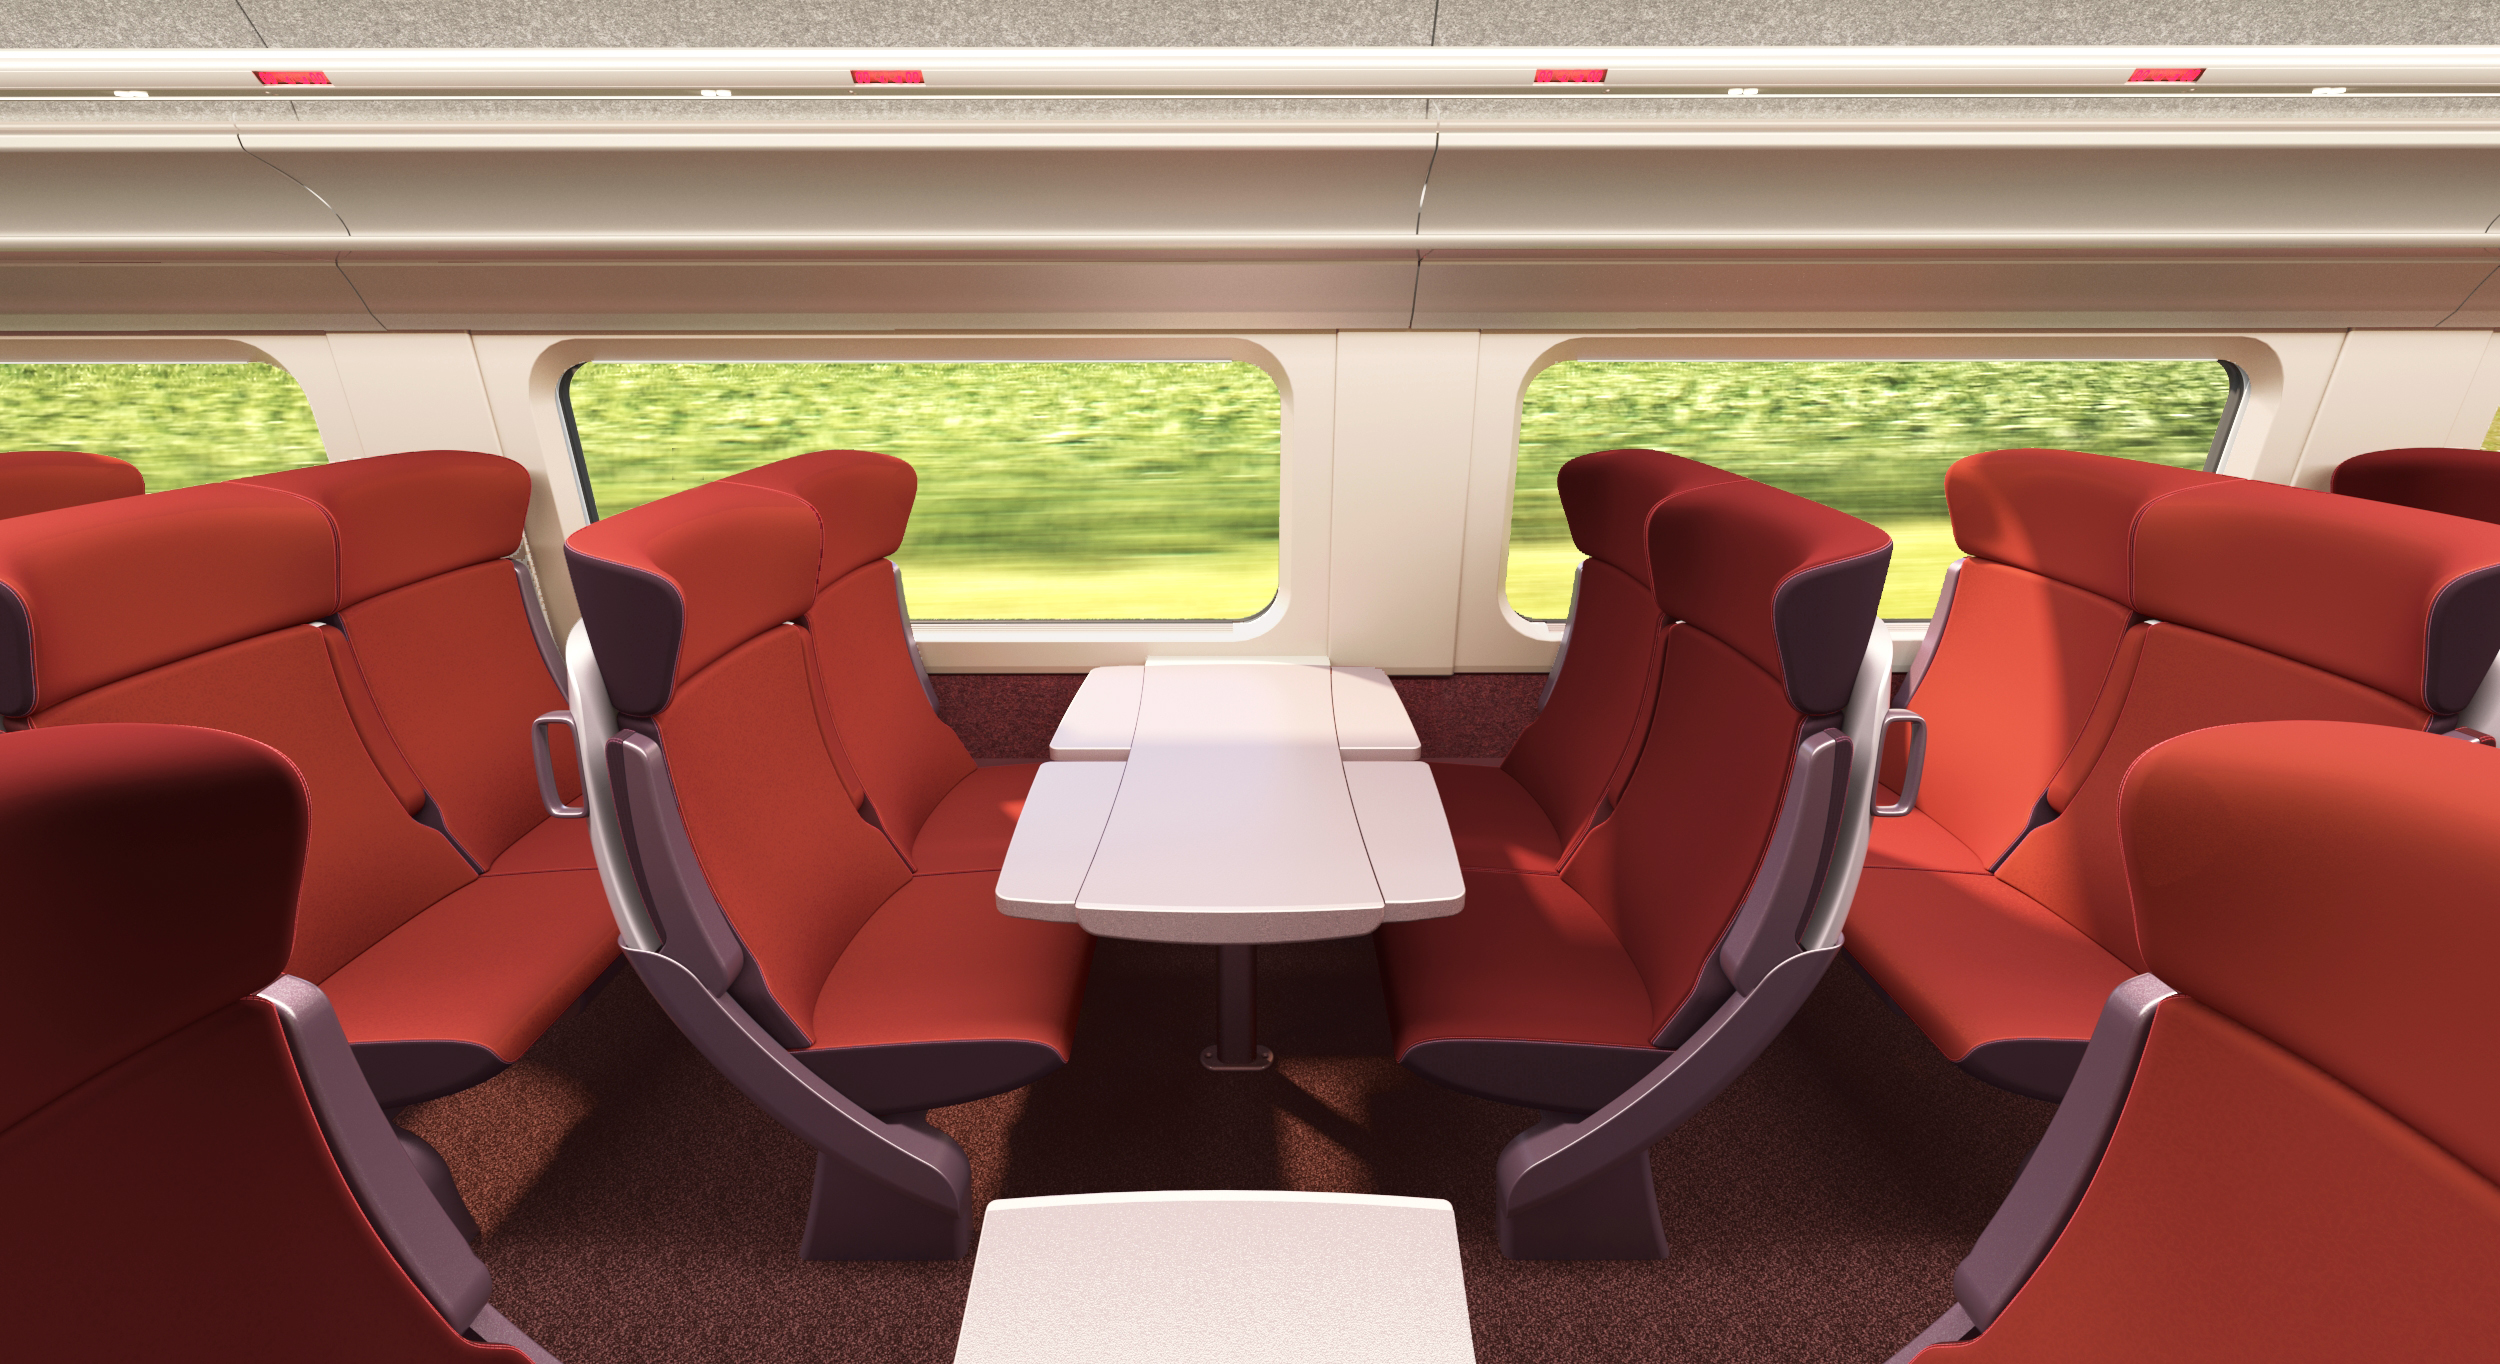 Interior of Thalys high-speed trains completely restyled   RailTech.com